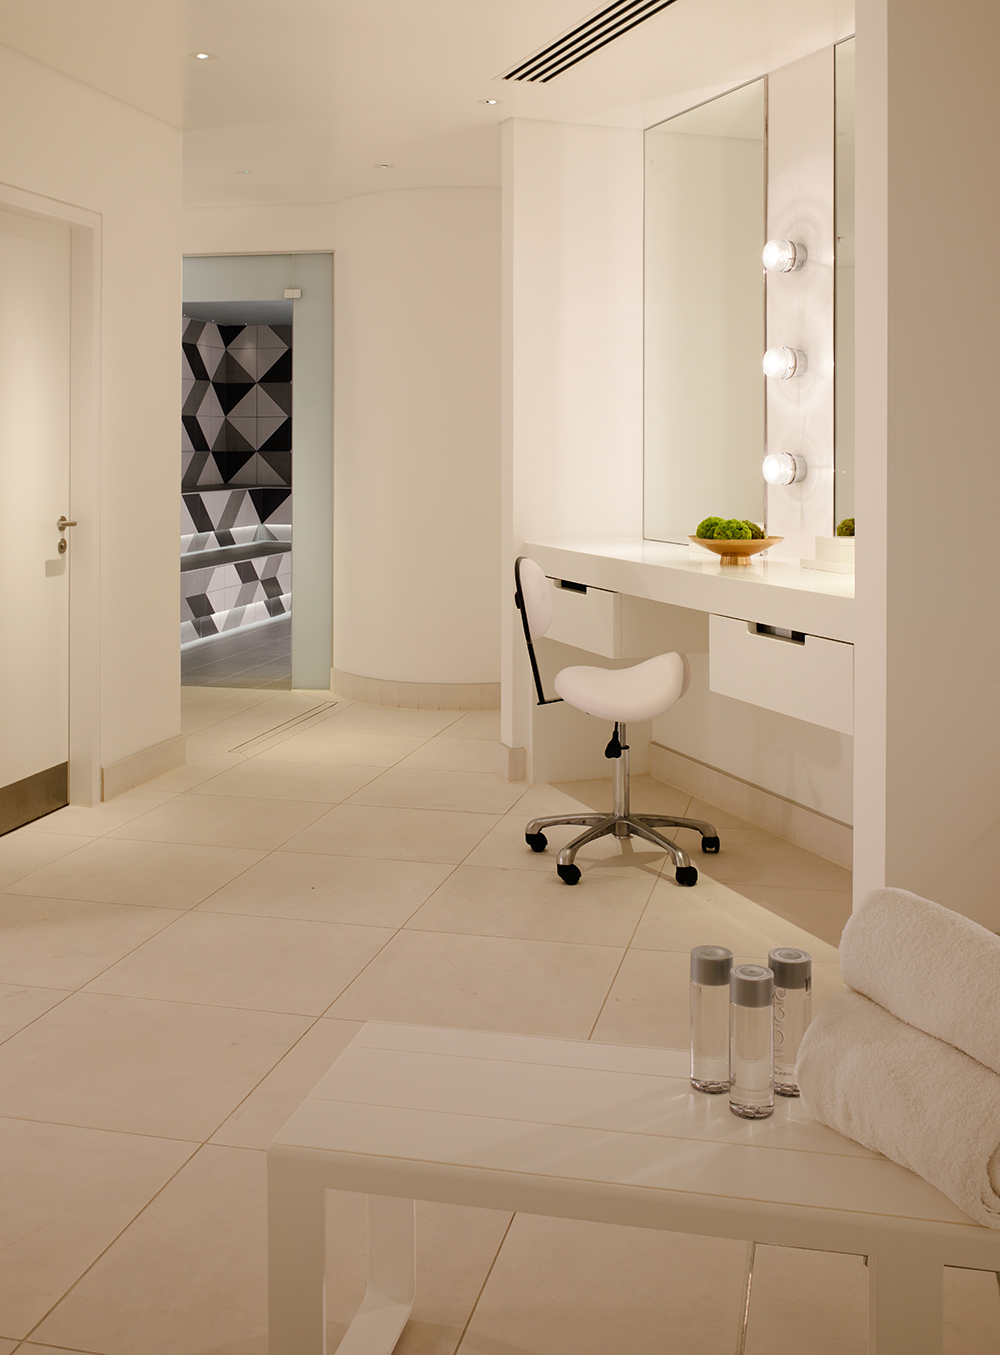 Spa changing room 2 resized.jpg